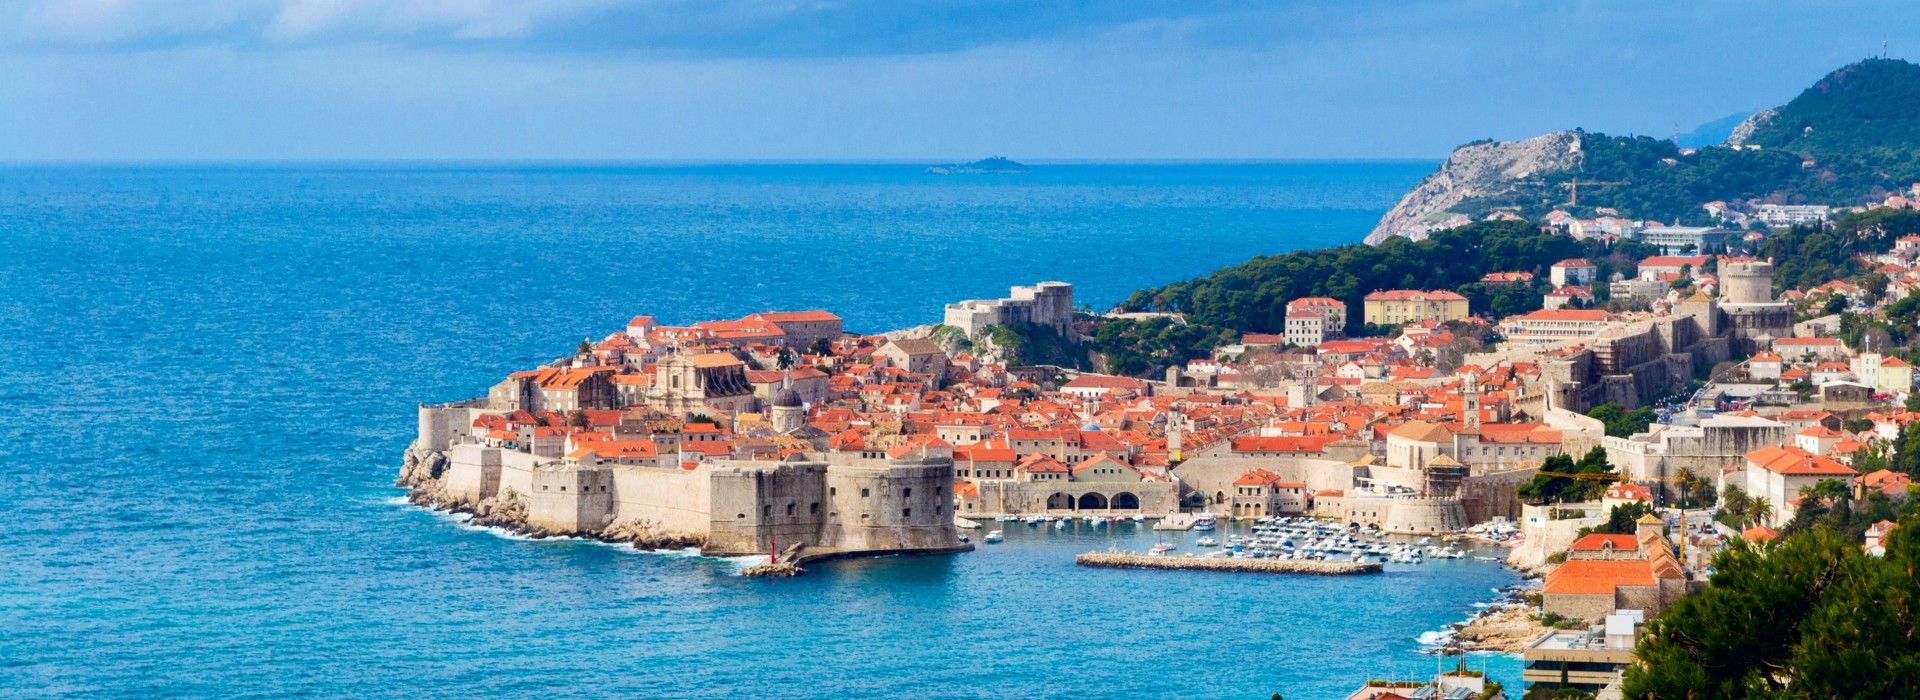 Croatia Tours and Trips to Croatia